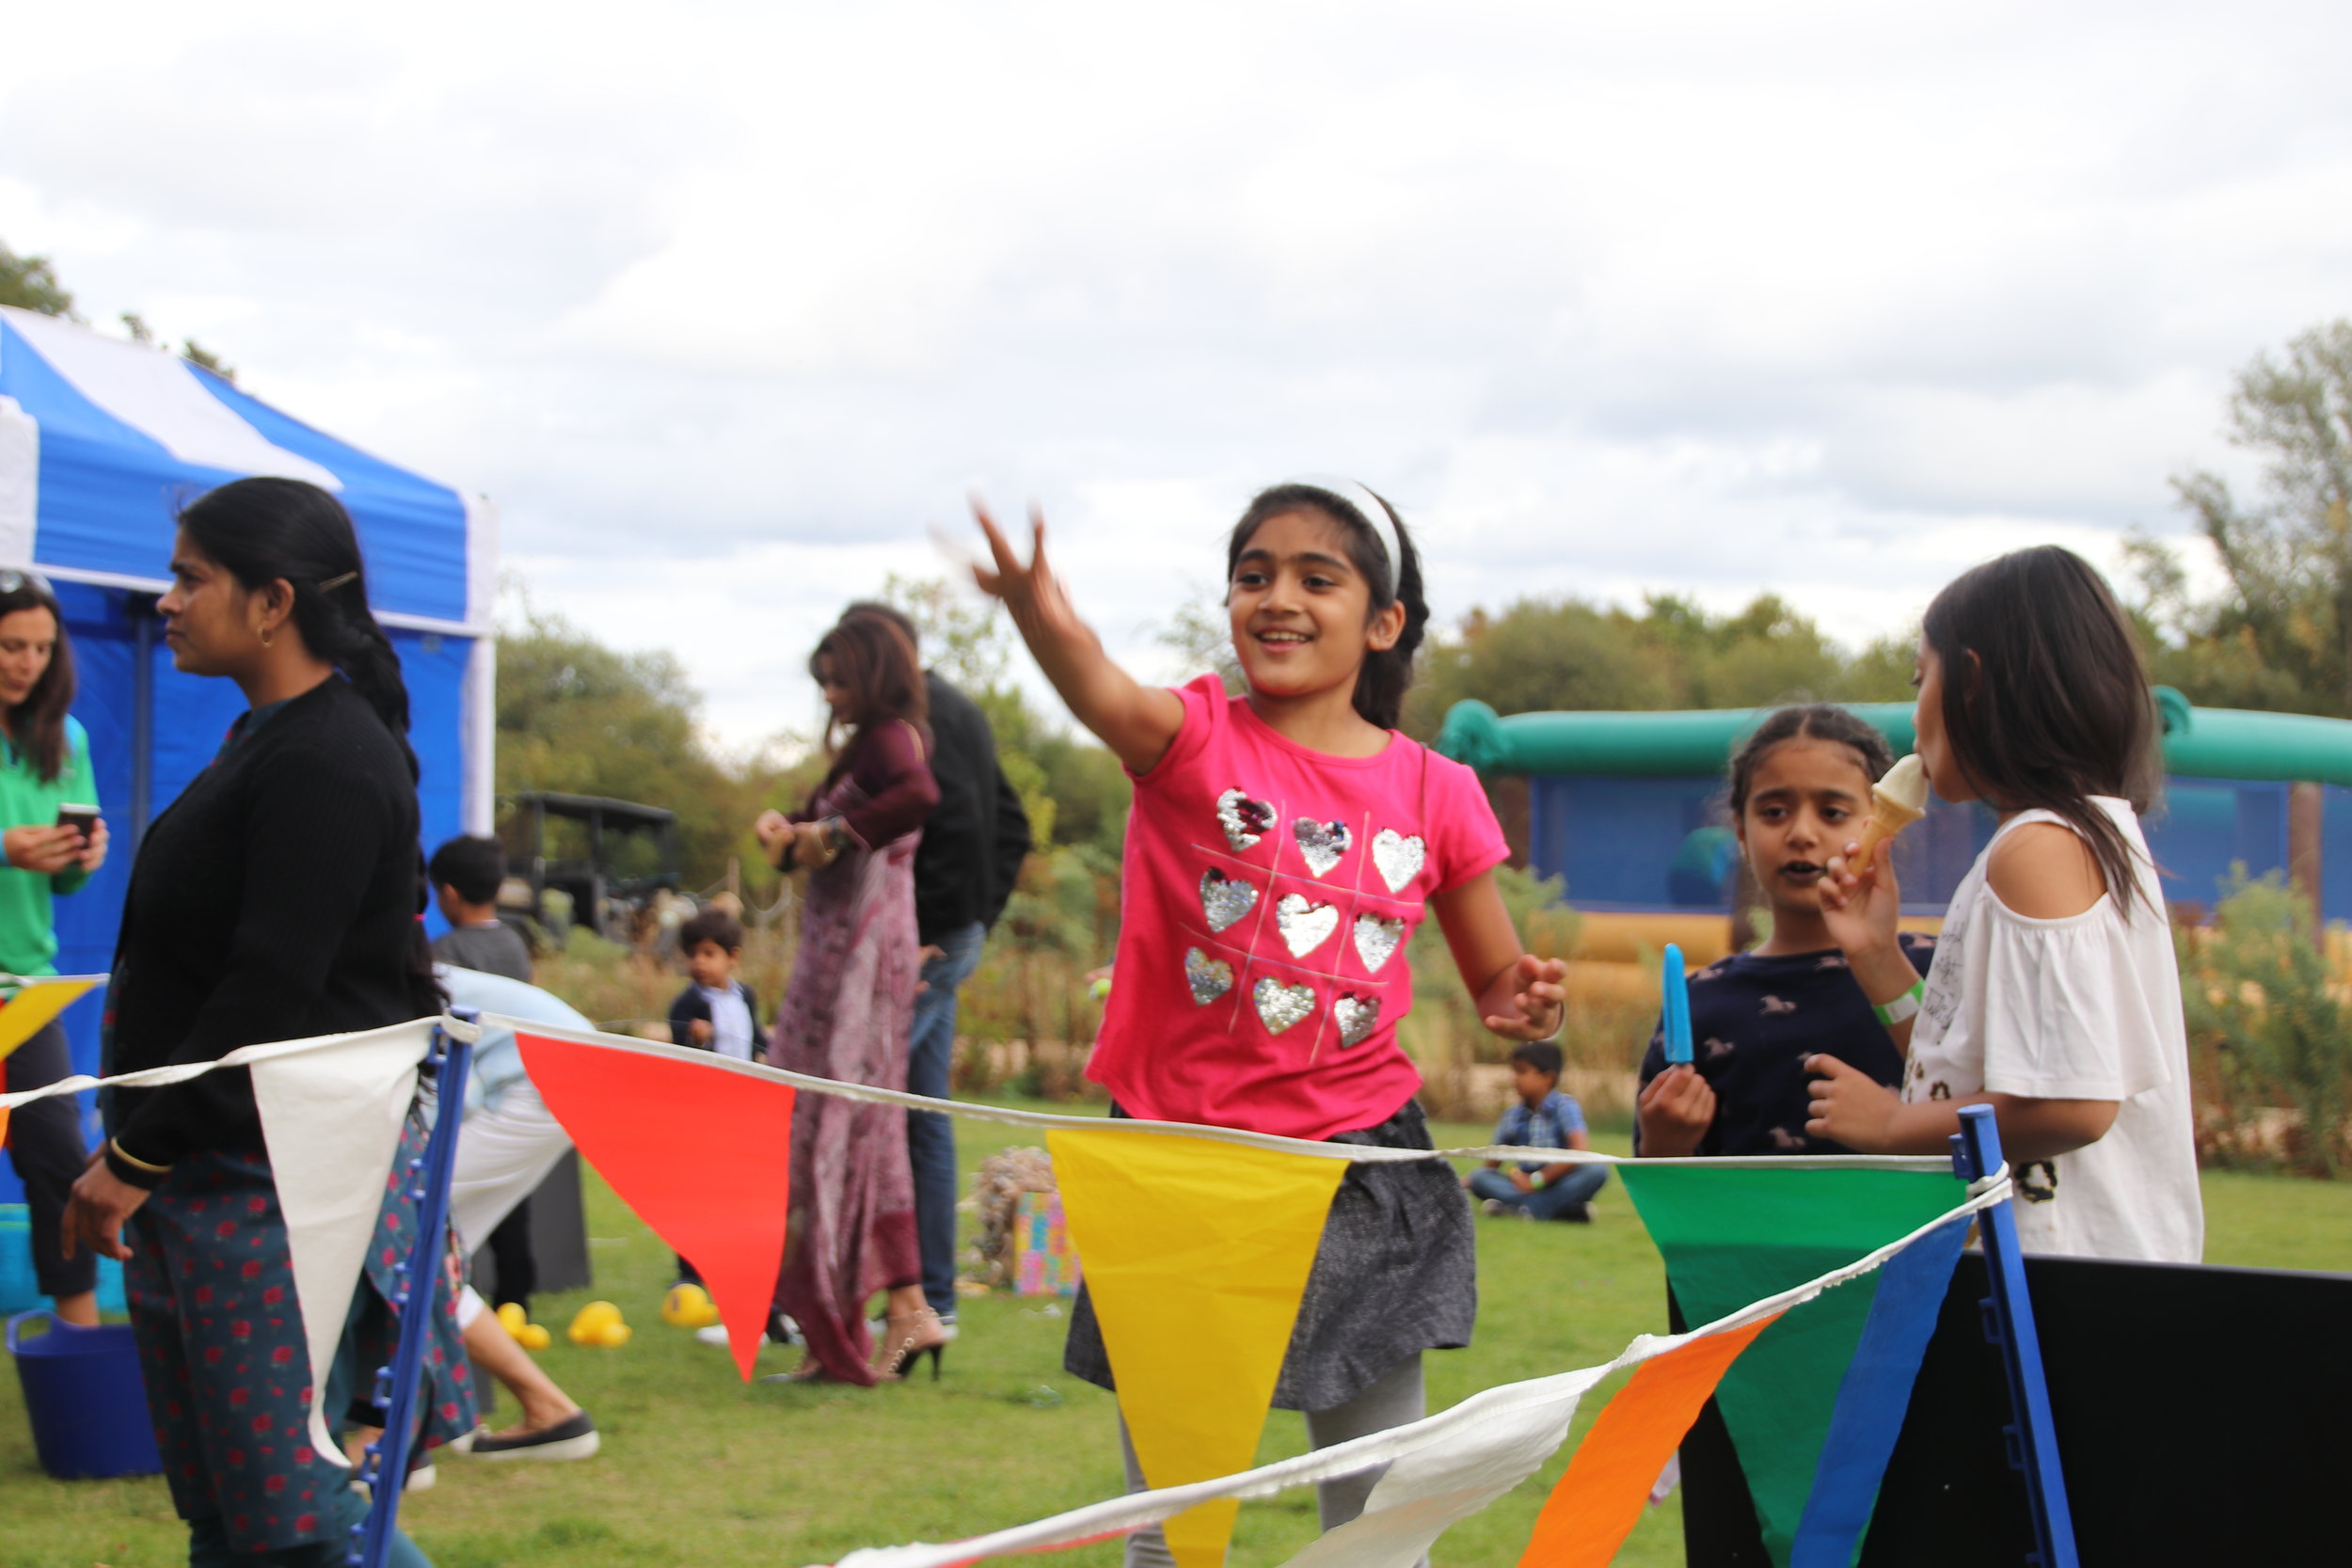 Activities for all - Immaculate planning for the client ensured that activities were suited for all ages.This ranged from boat rides, funfair stalls, crazy golf and inflatable volleyball!